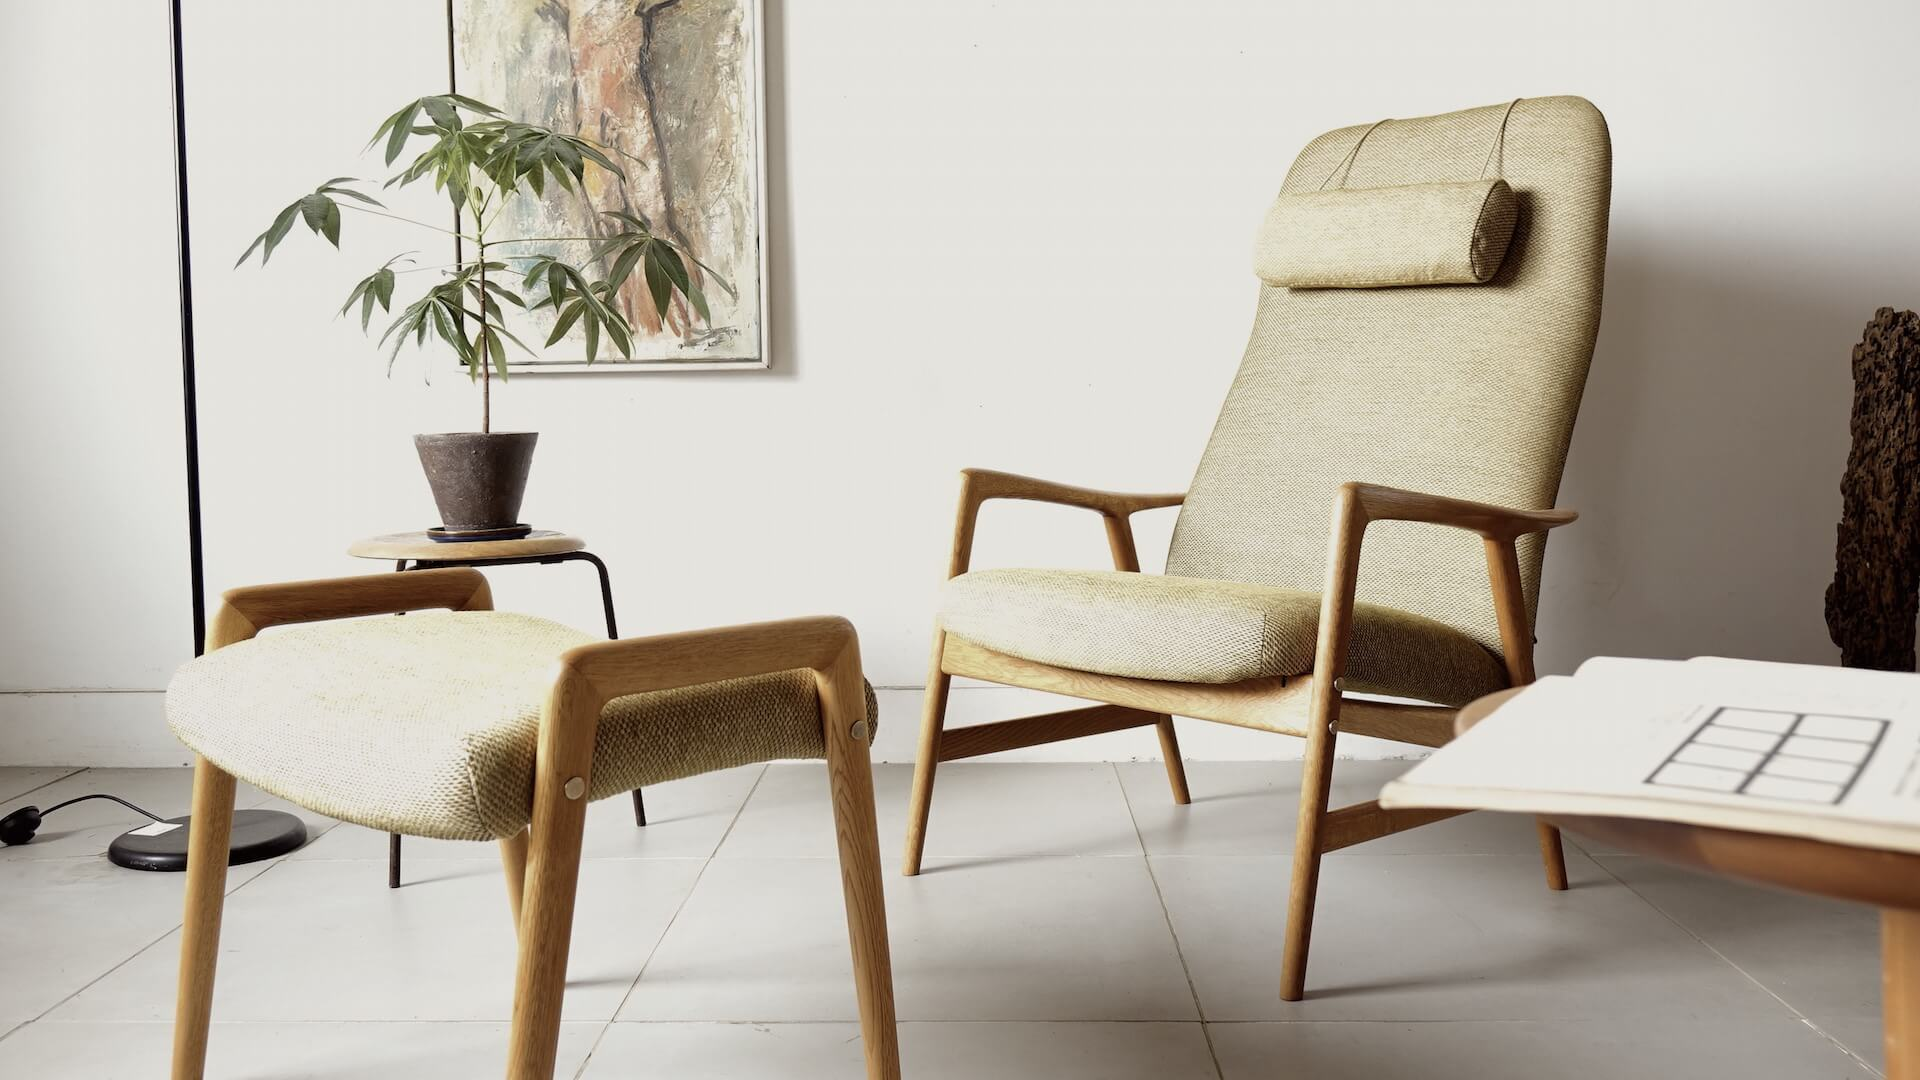 Eazychair with stool by Alf Svensson